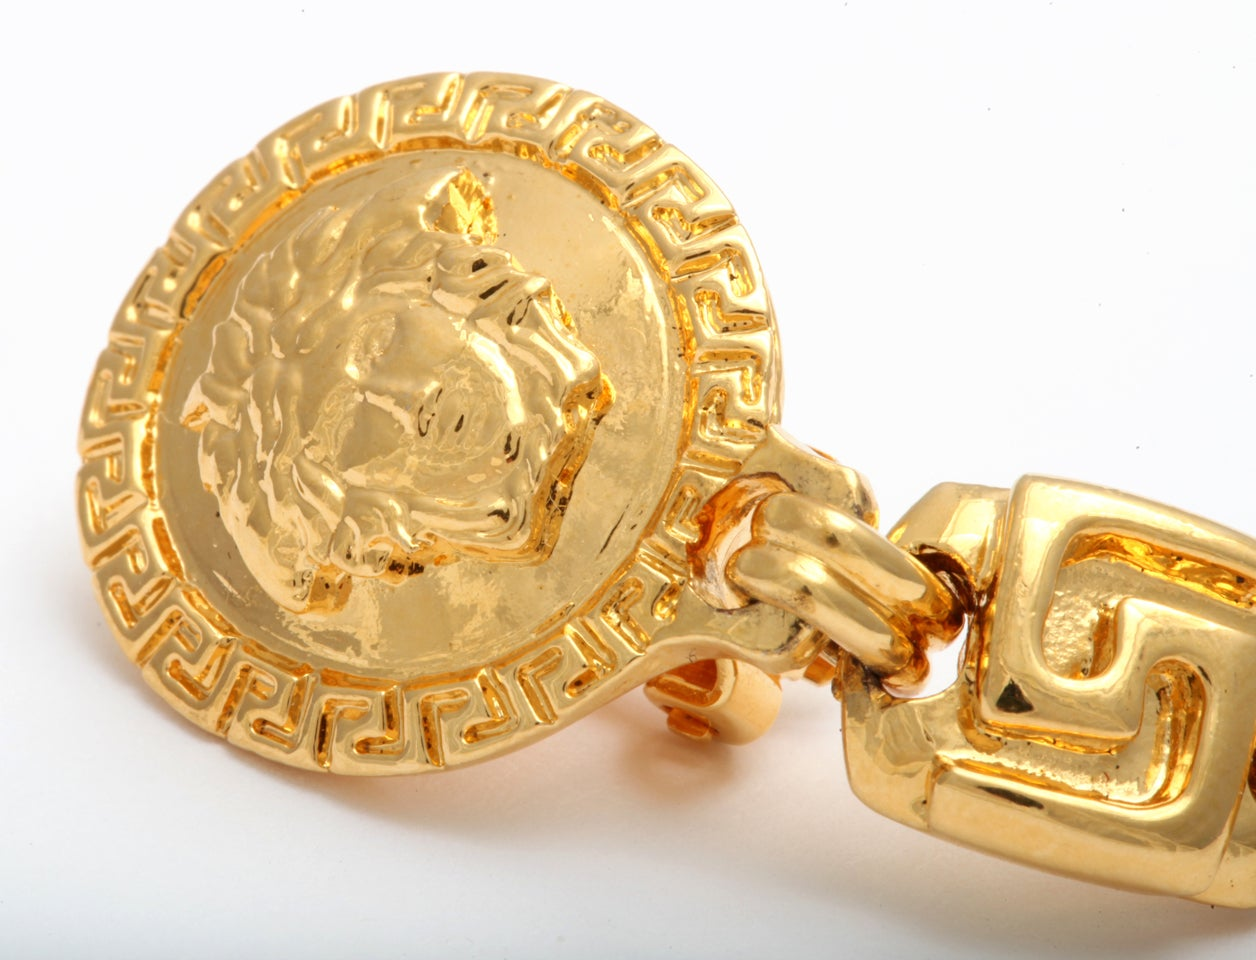 GIANNI VERSACE MEDUSA AND GRECA DANGLING EARRINGS 5